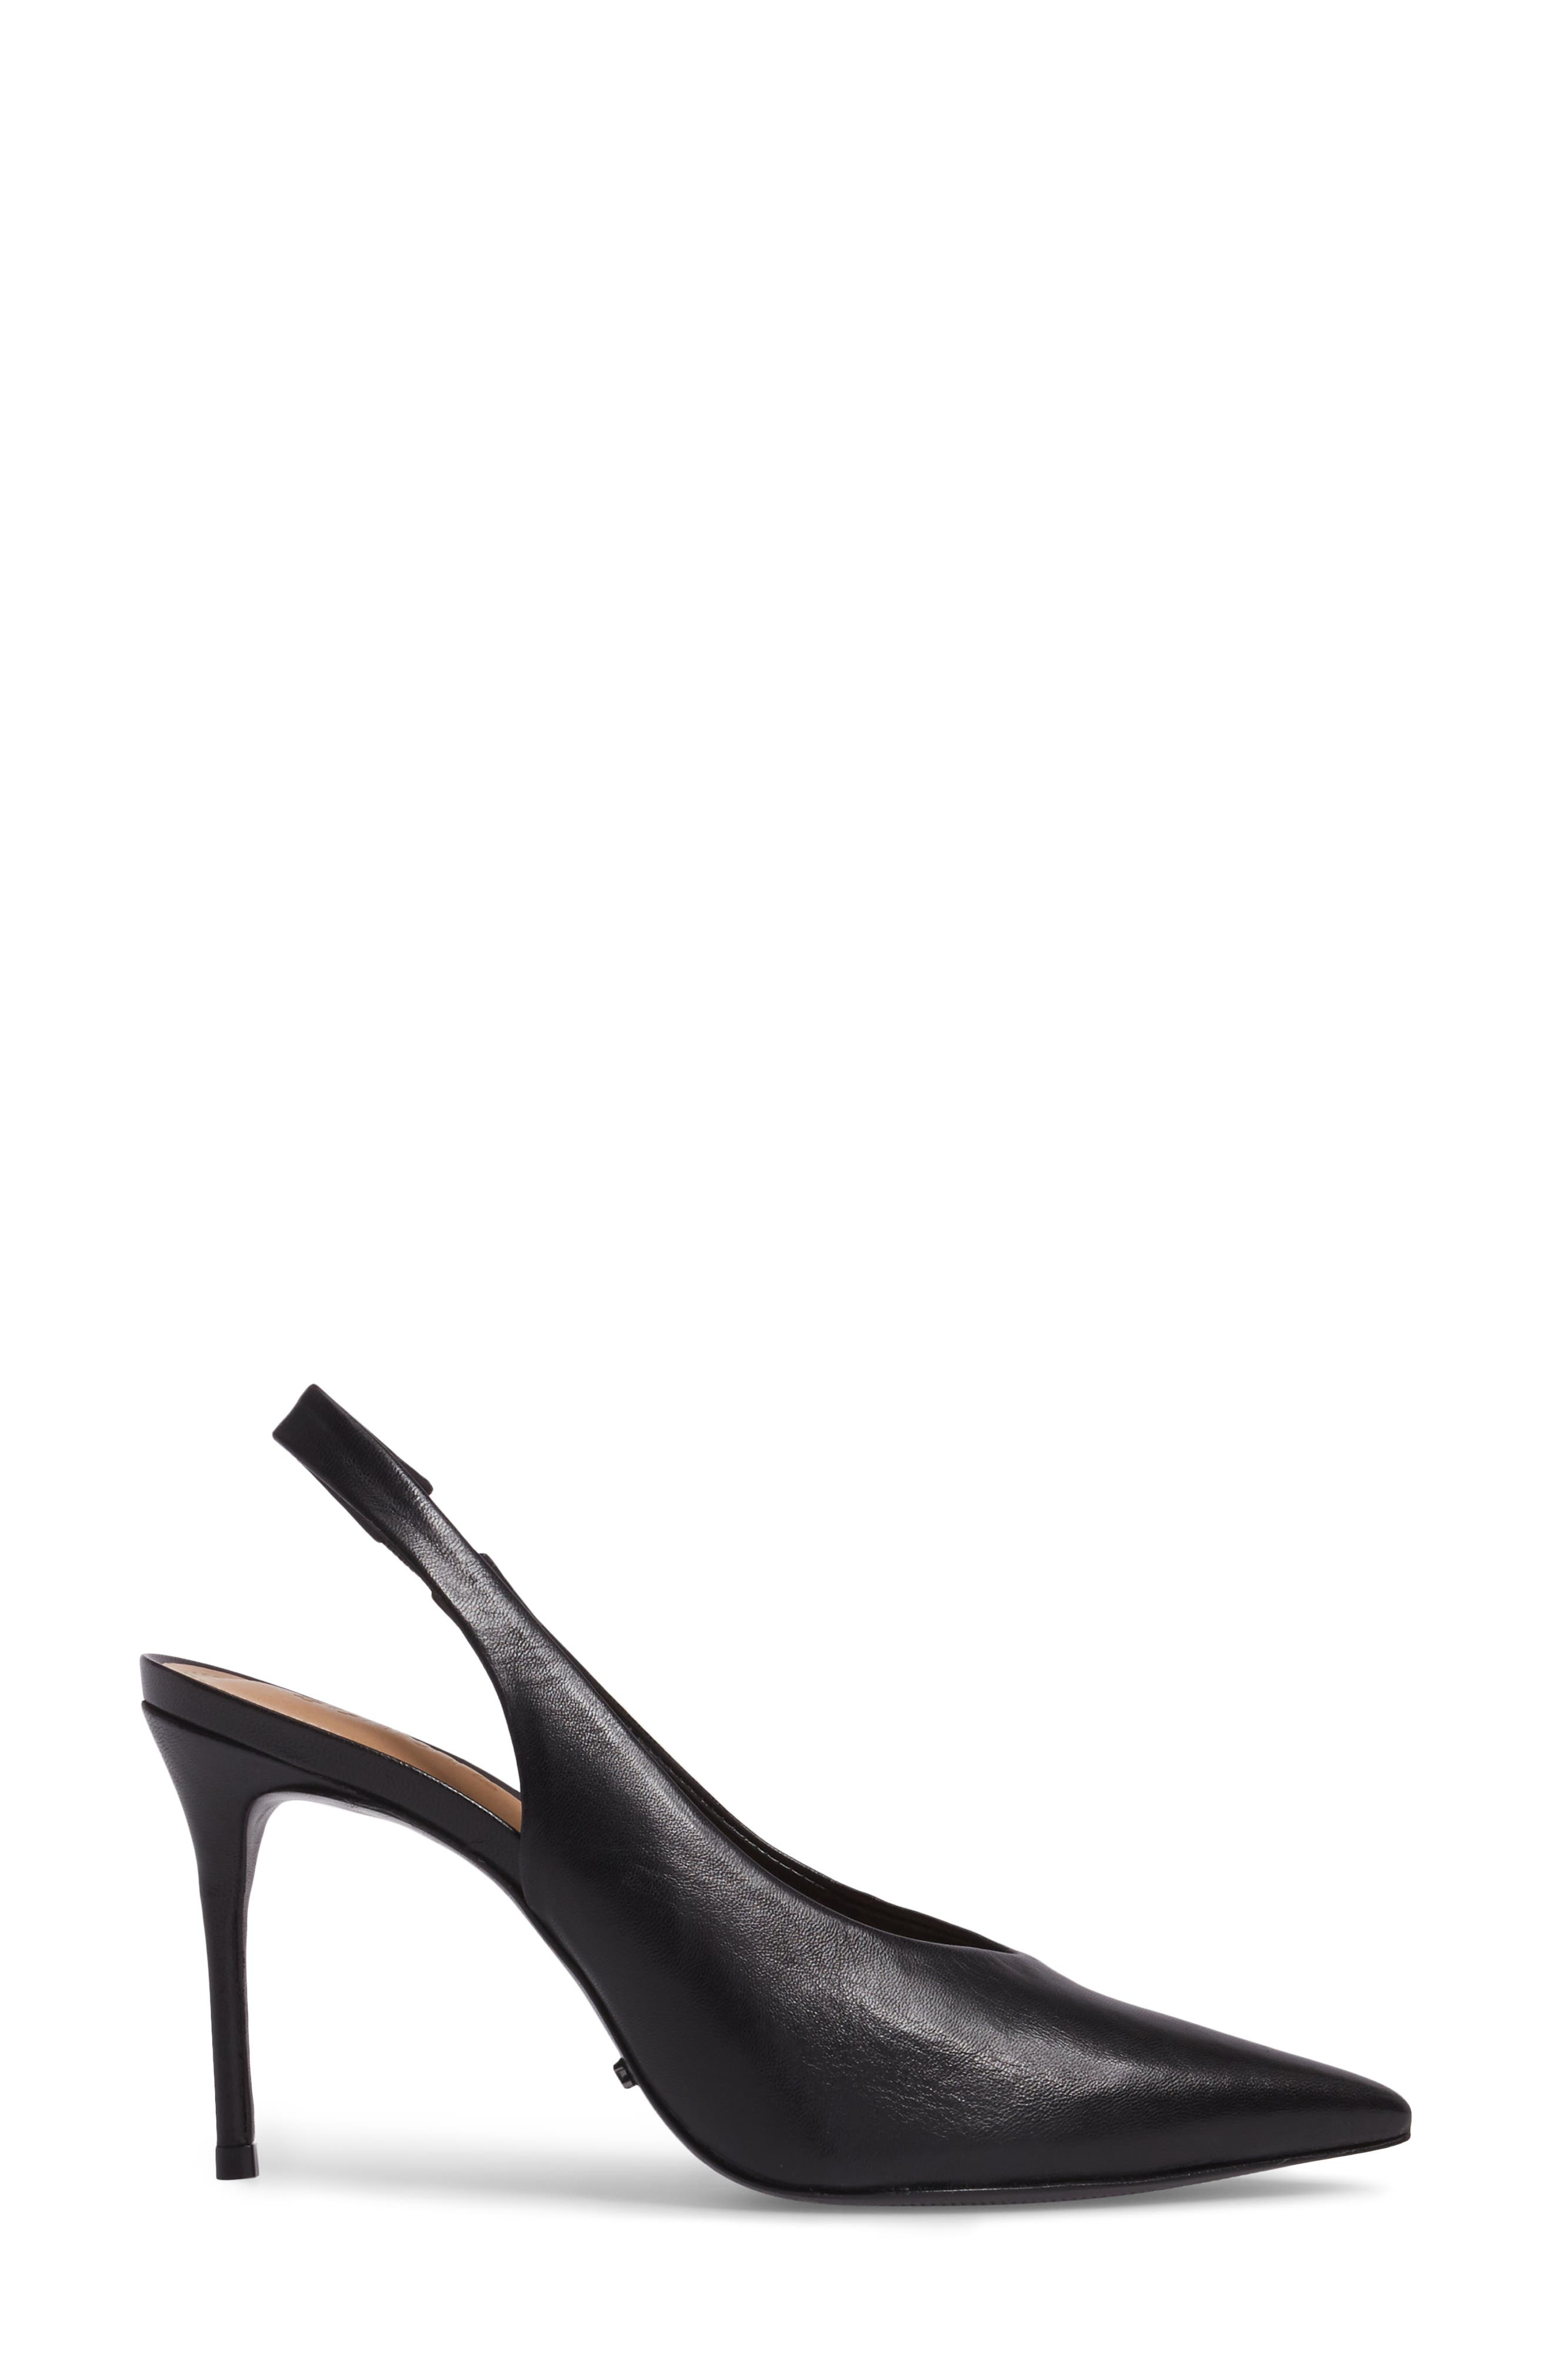 Alternate Image 3  - Schutz Phisalis Slingback Pump (Women)